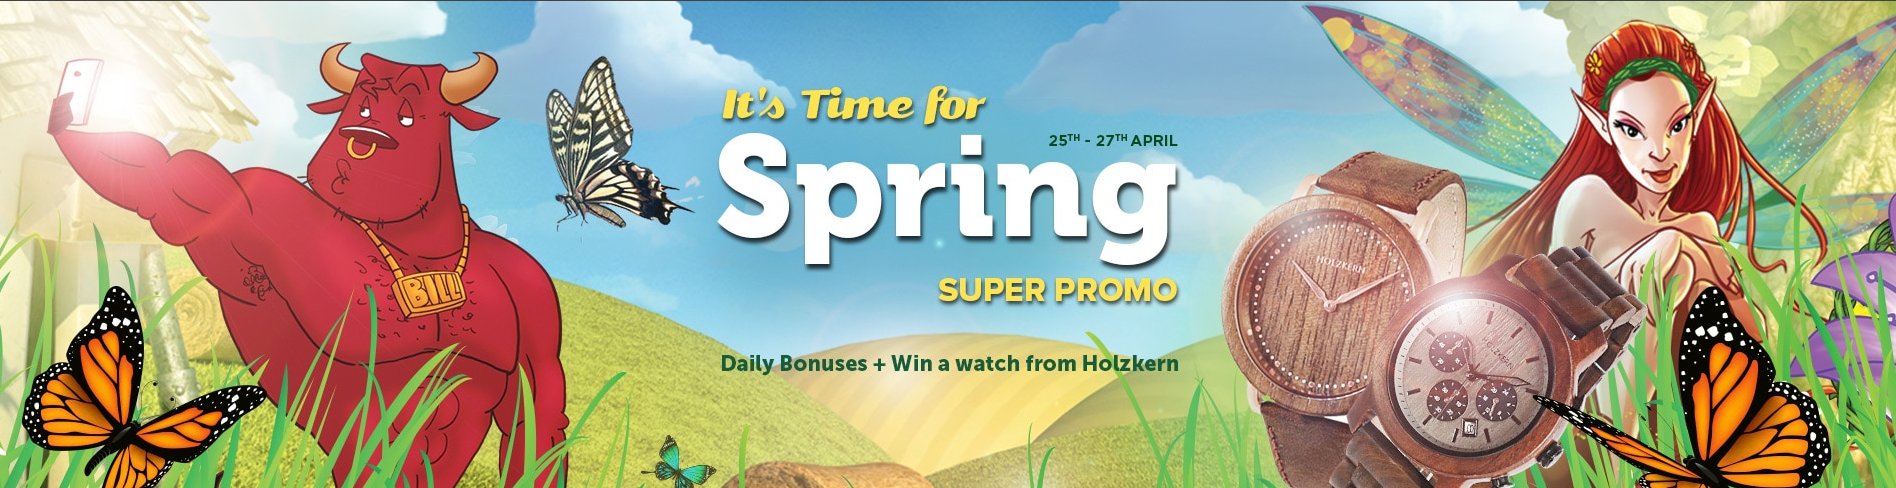 Daily bonuses and Holzkern watches